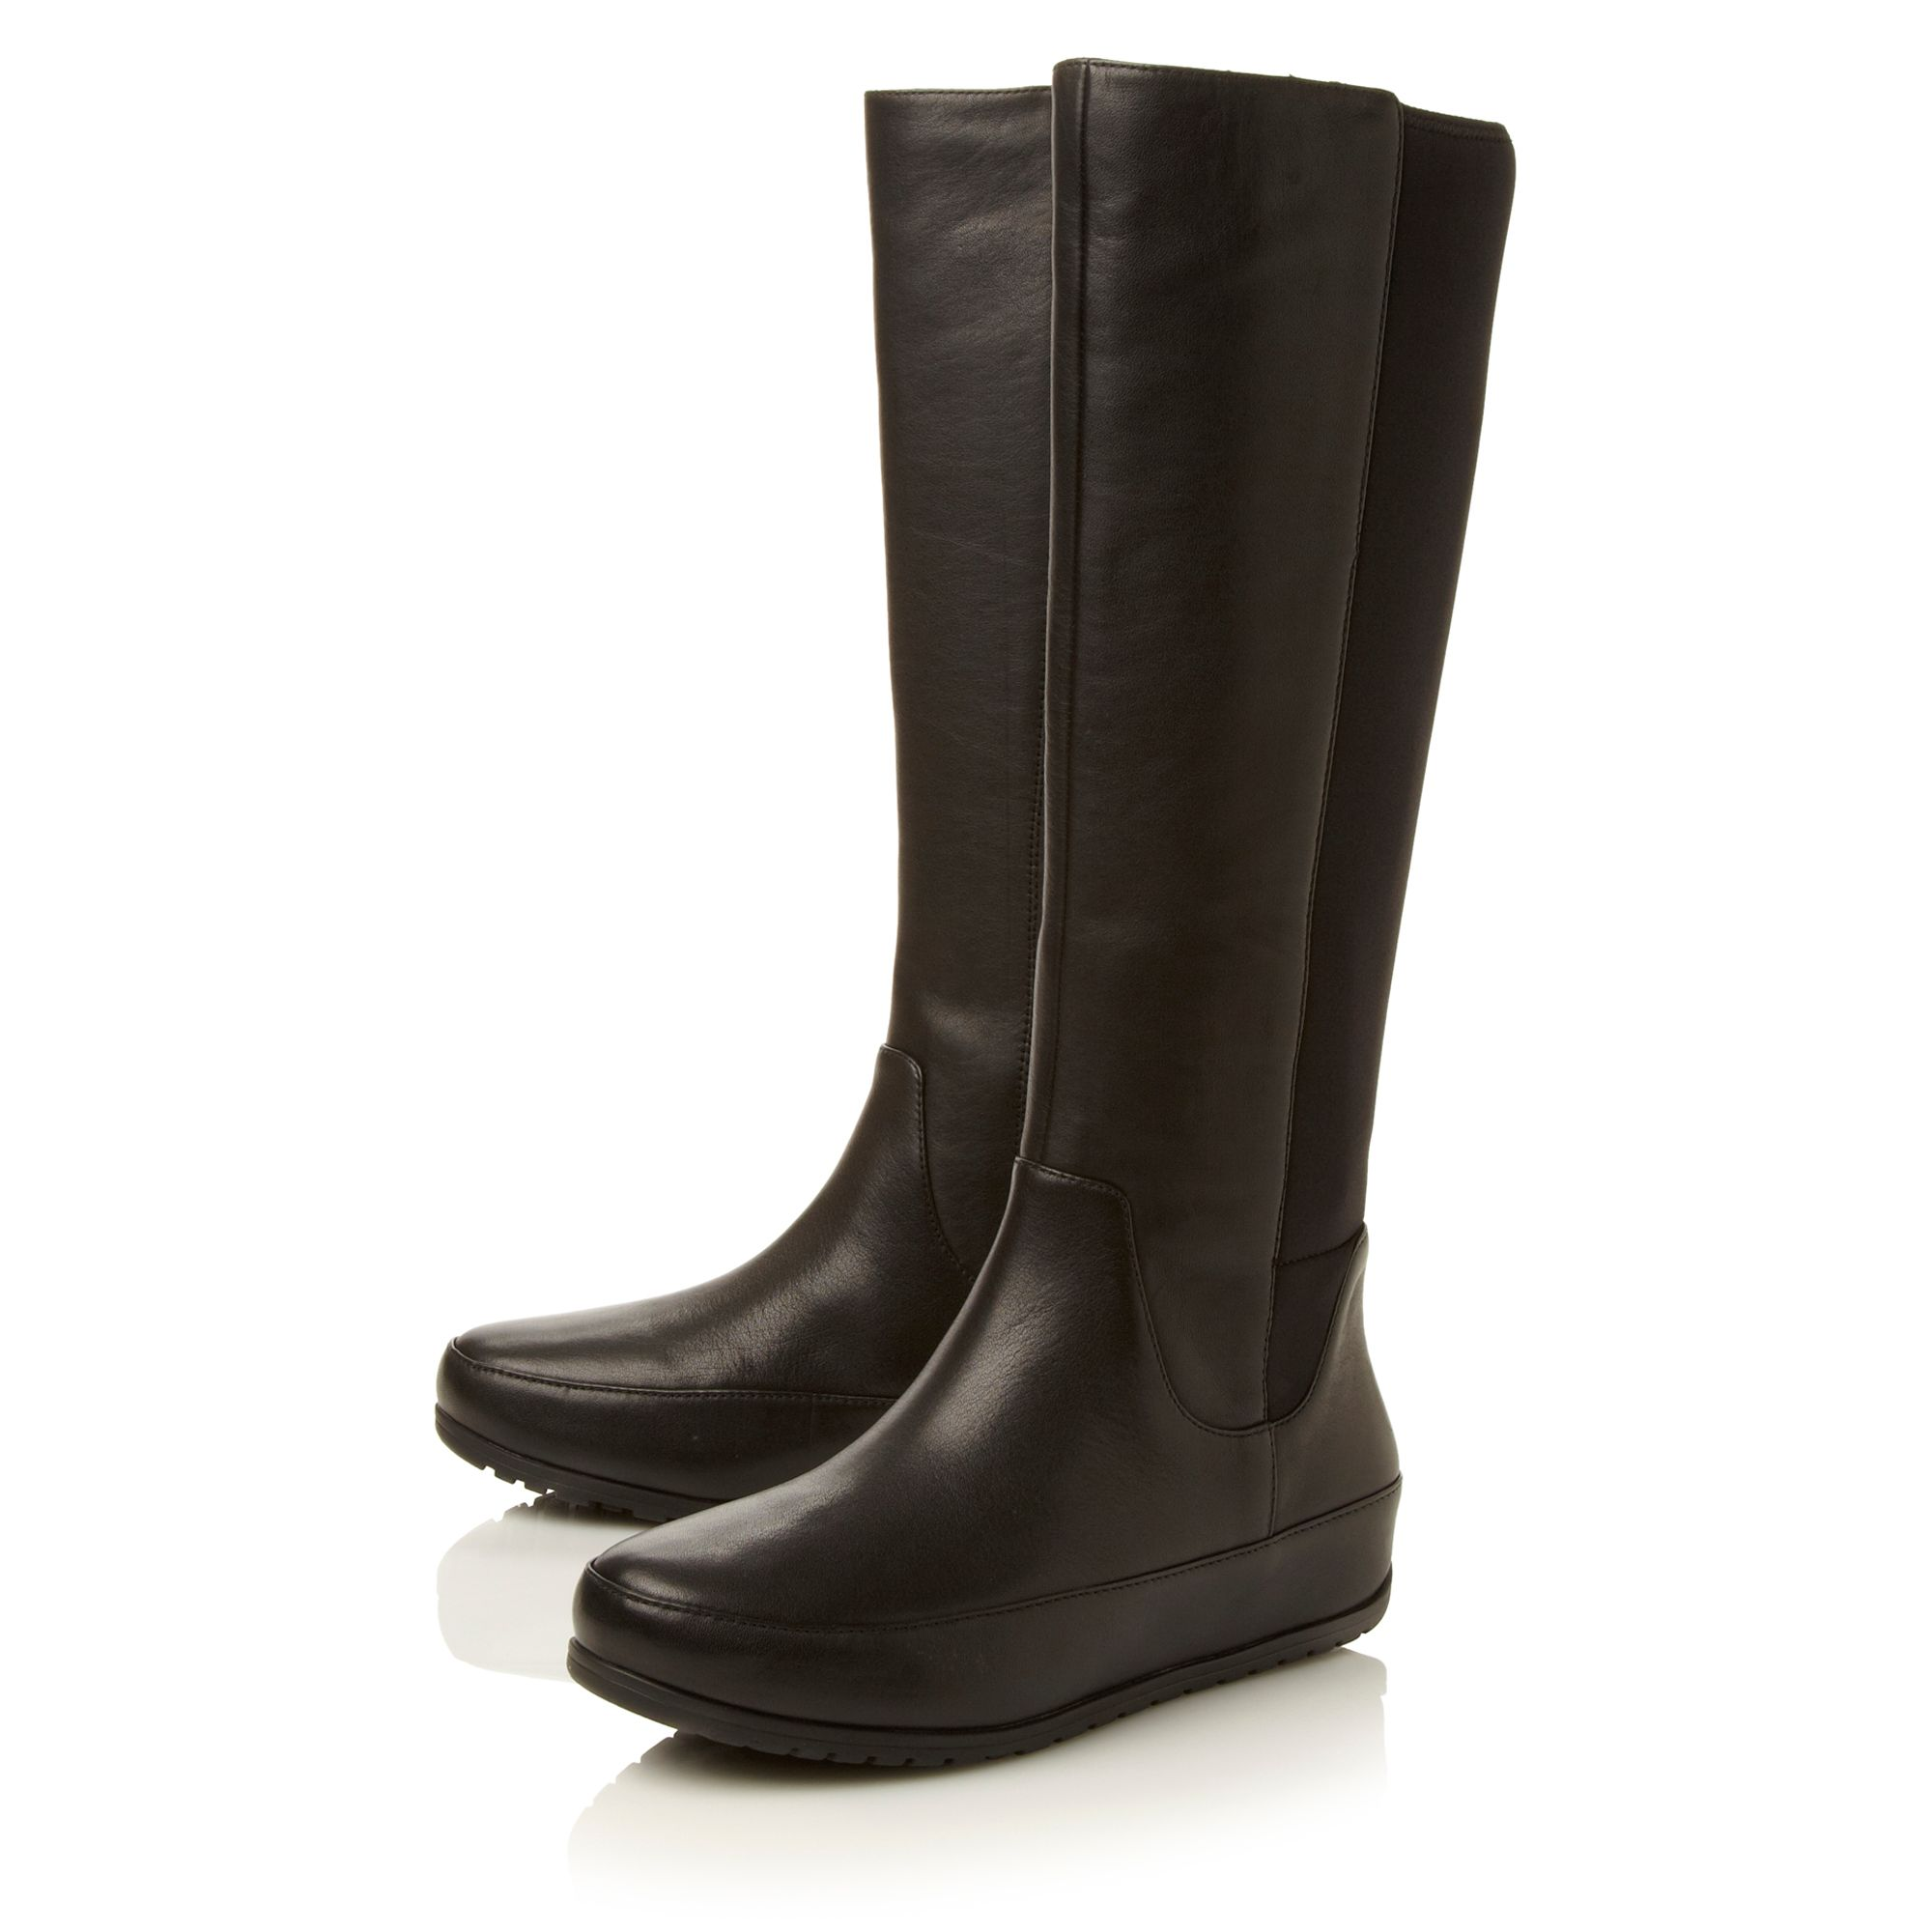 Due Neoprene stretch boots